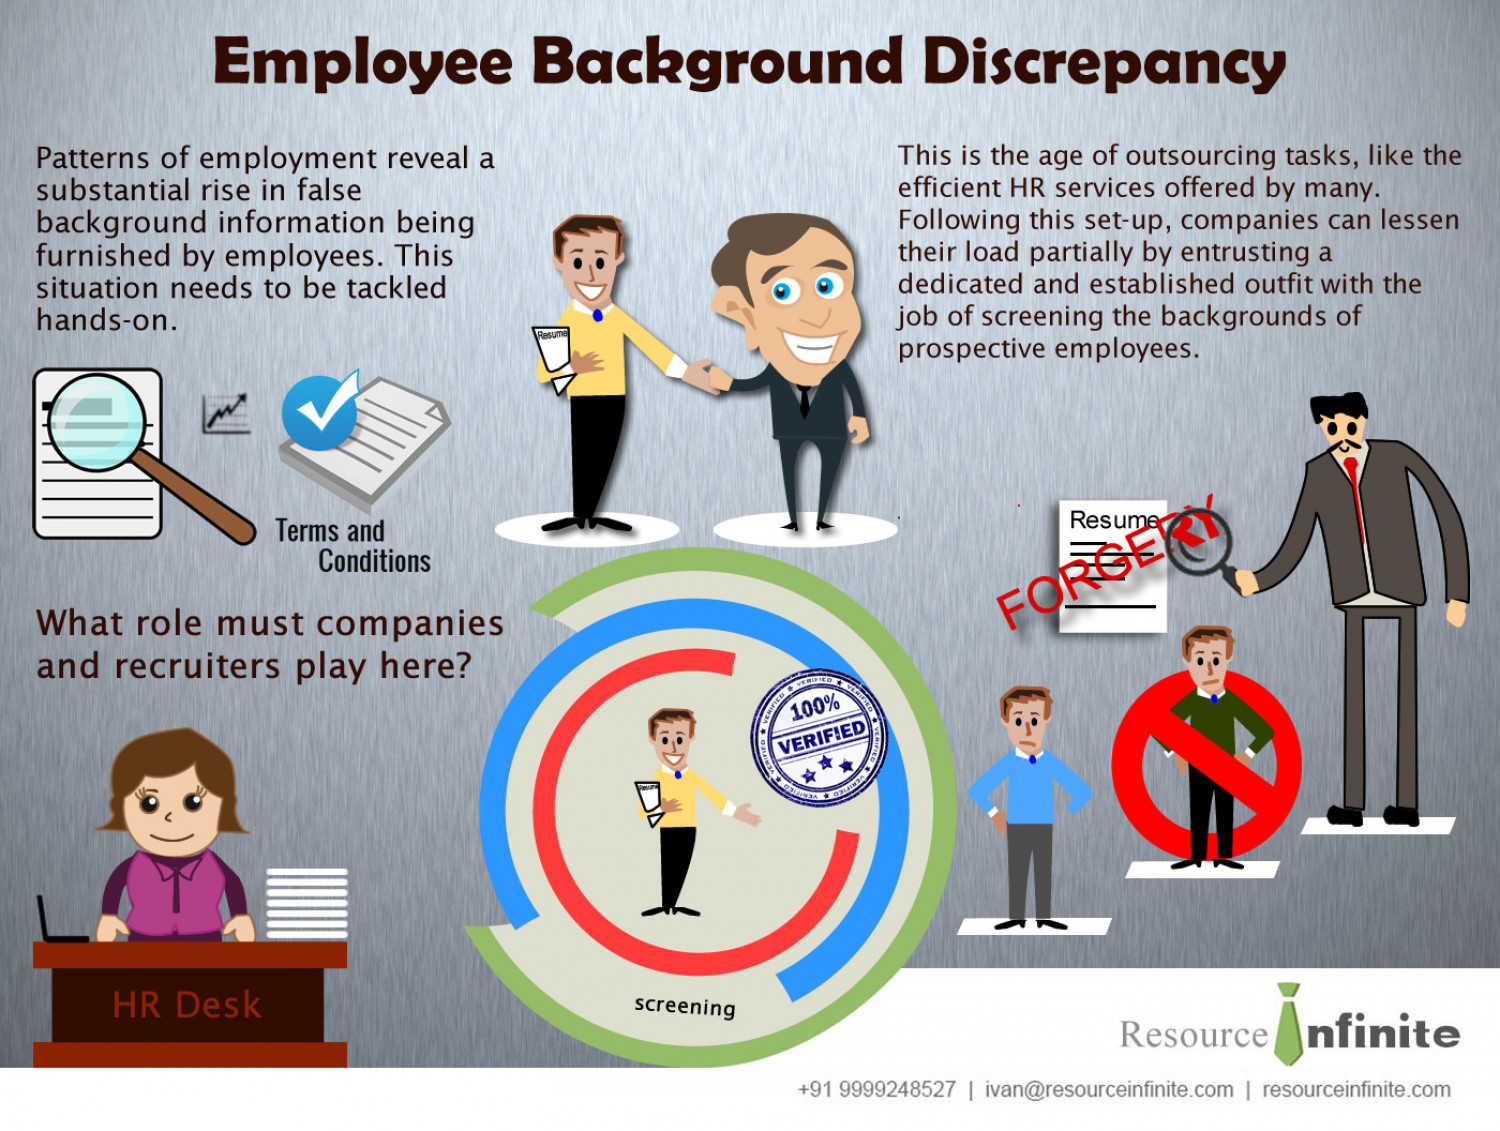 Employee Background Discrepancy Infographic